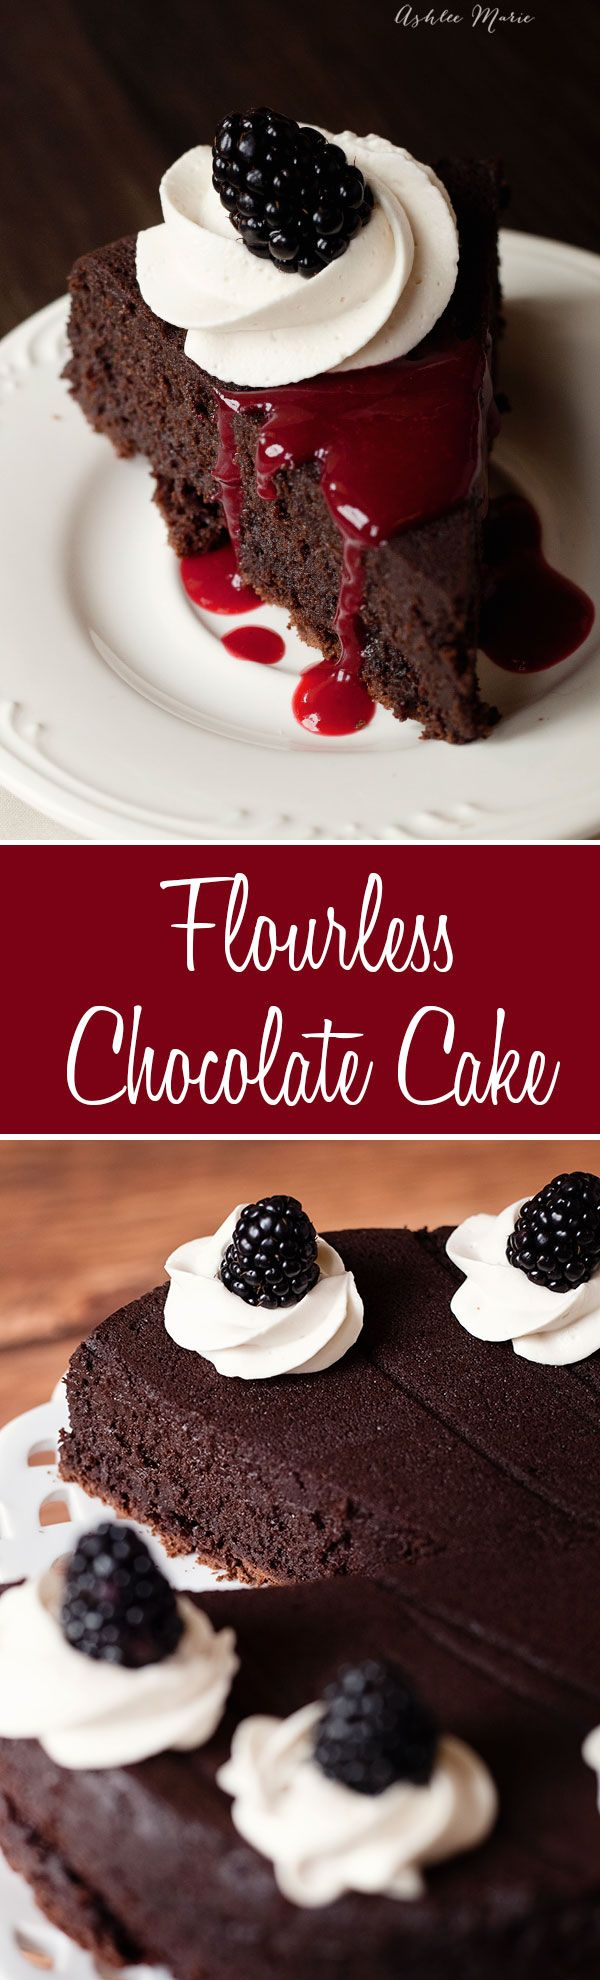 Flourless chocolate cake cocoa powder recipe